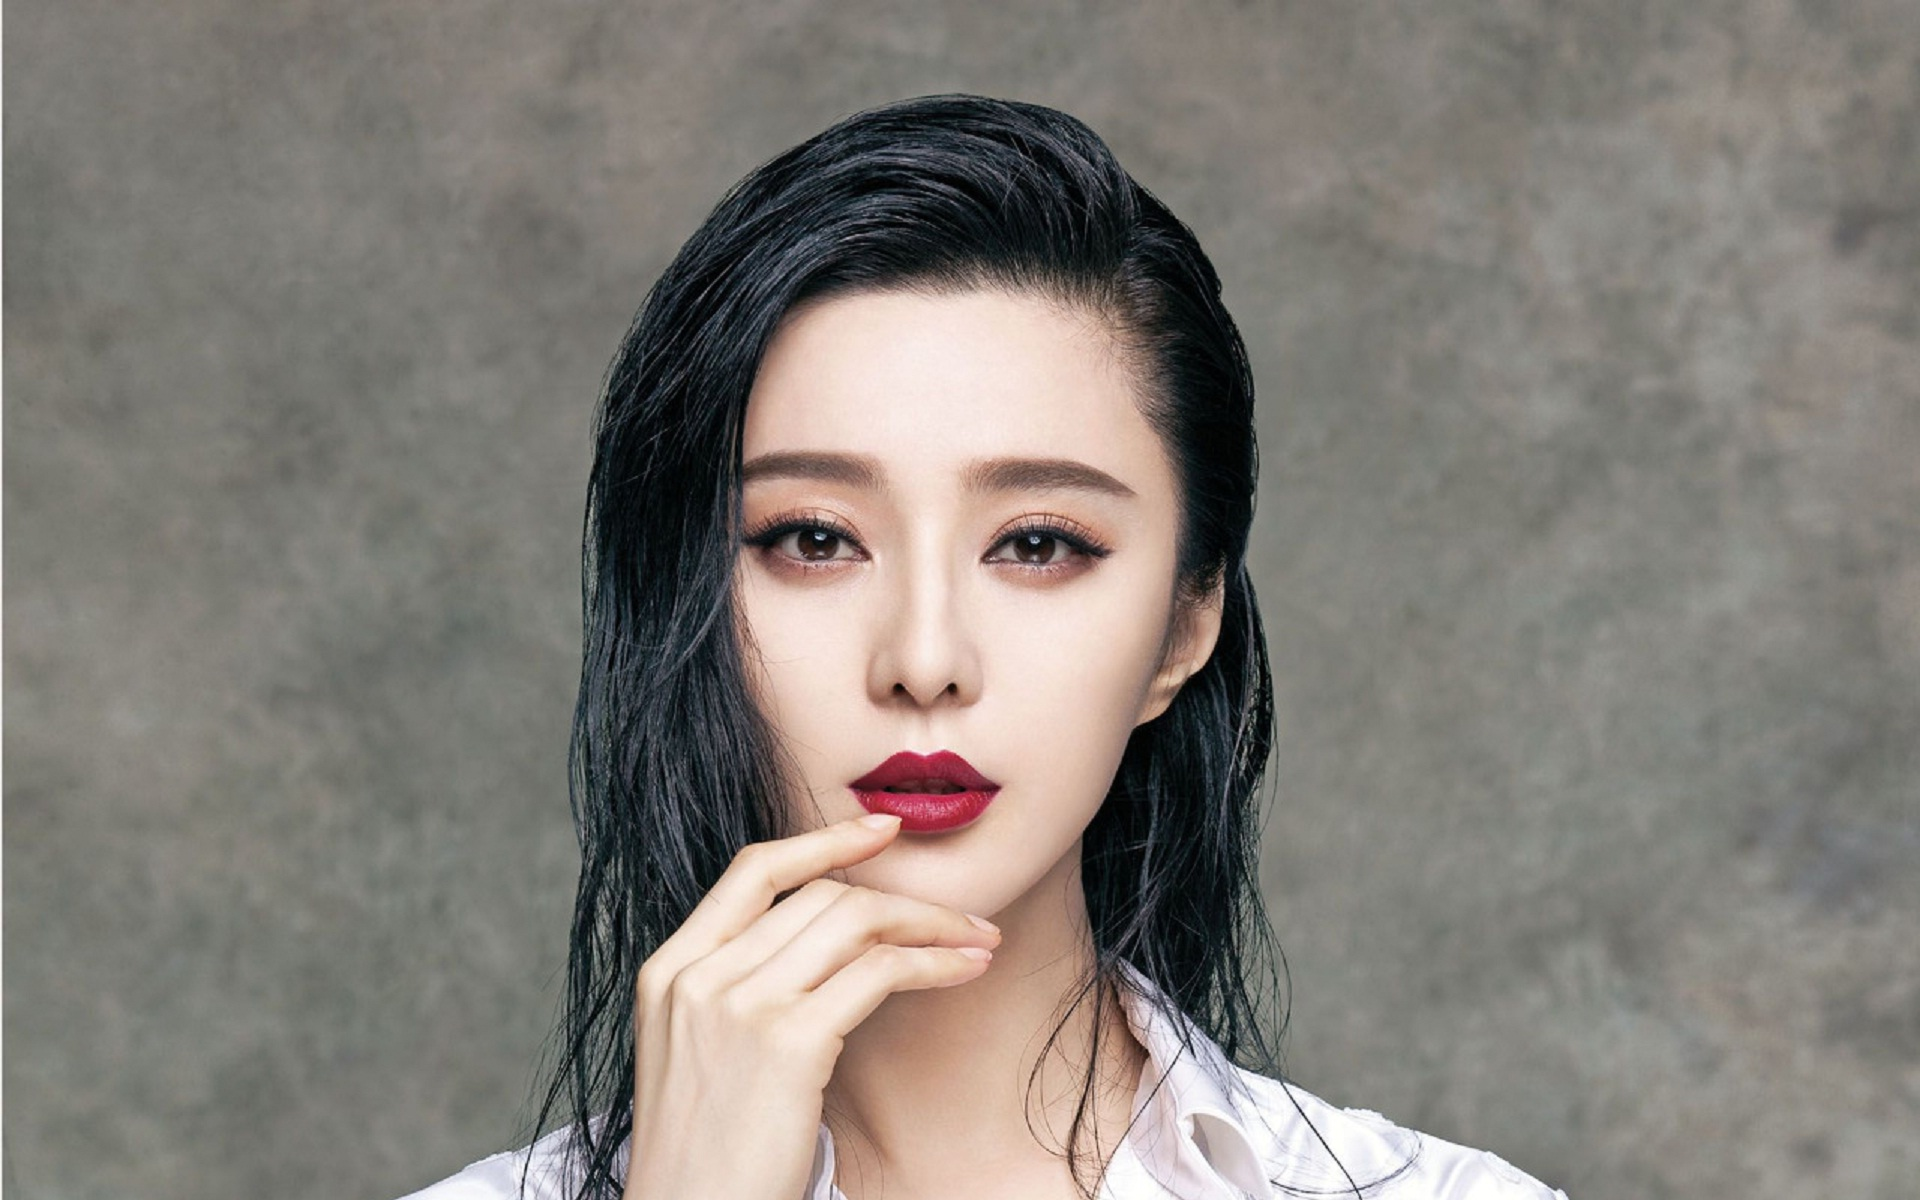 Fan-Bingbing <h1>Dirty Details About Chinese Mail Order Brides Revealed</h1>